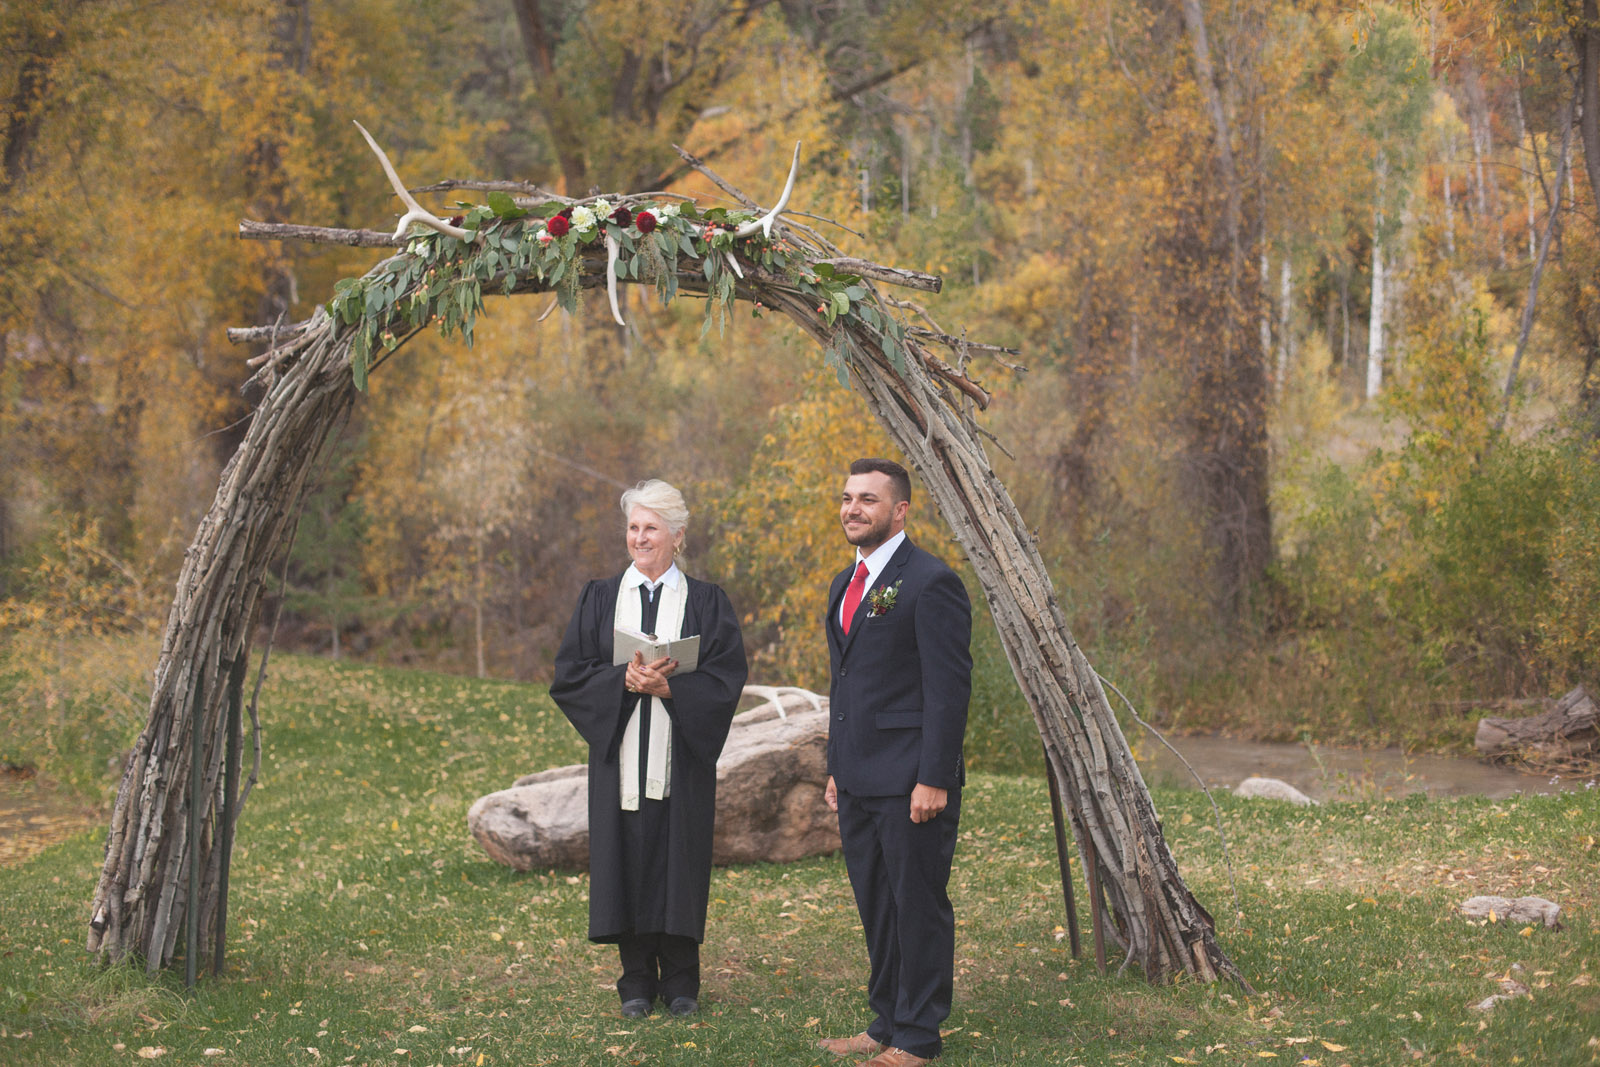 groom awaiting bride during private elopement wedding ceremony in durango colorado